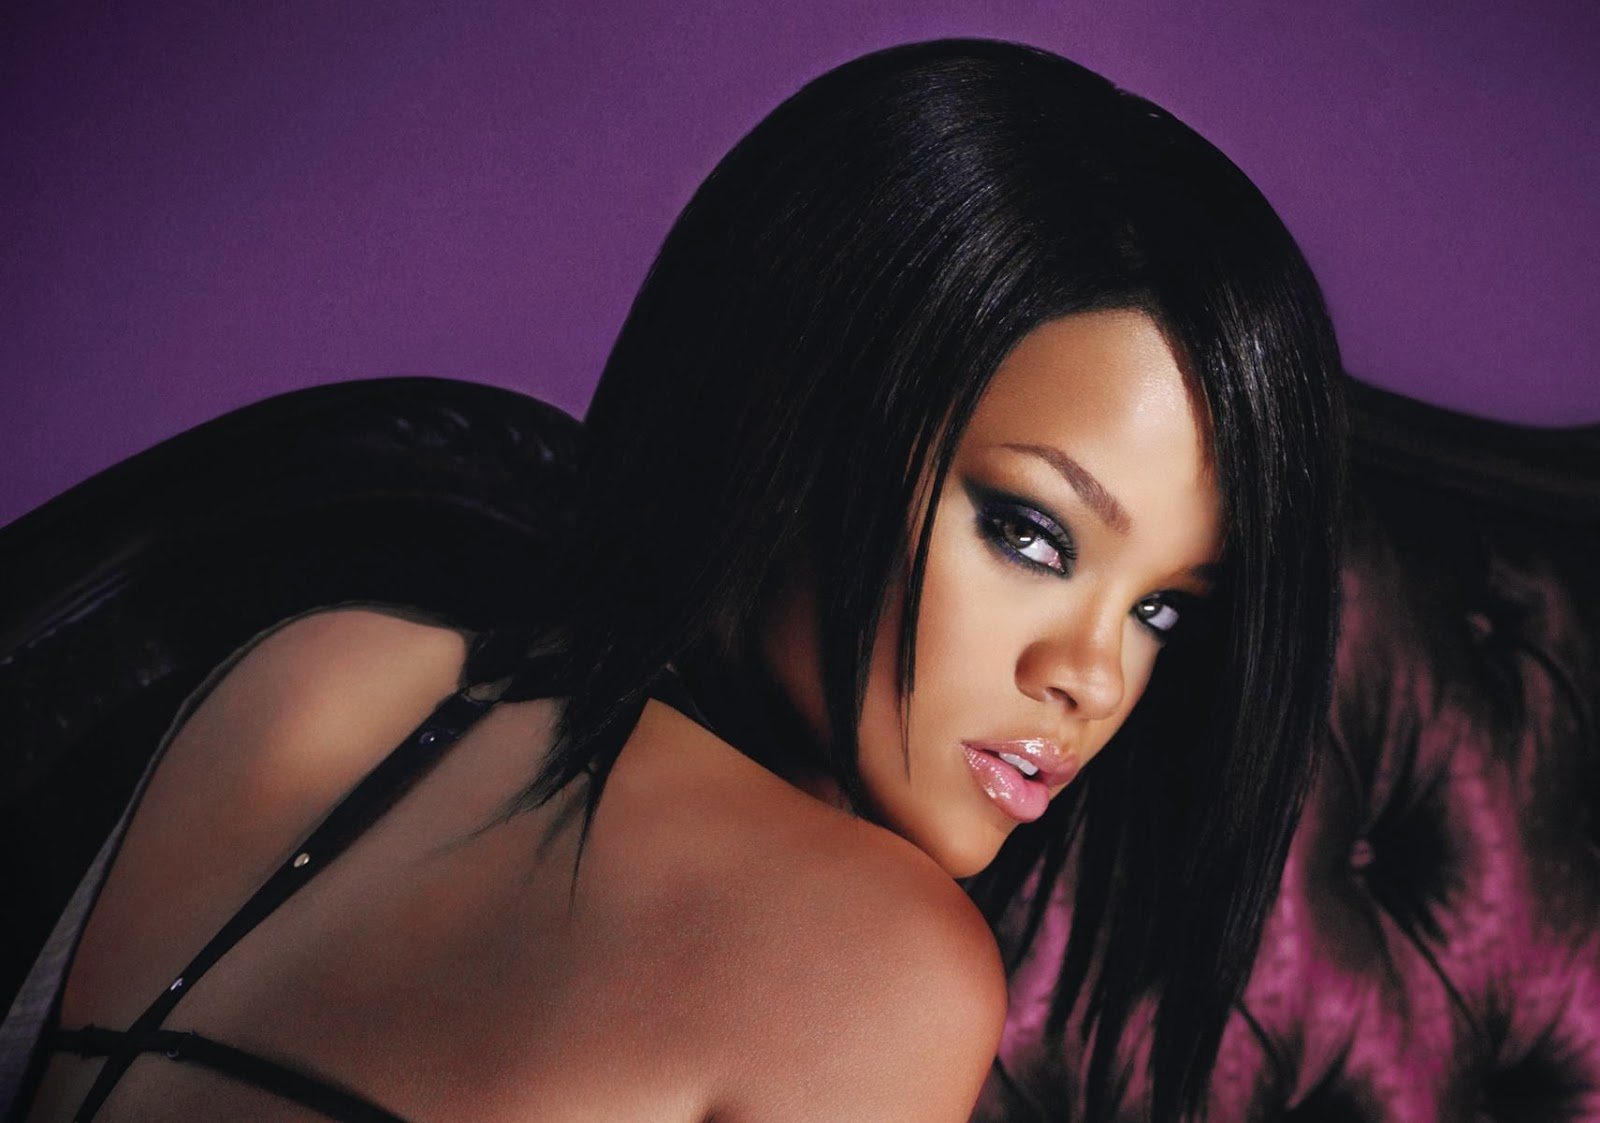 rihanna hd wallpapers, rihanna hd wallpapers new, hot rihanna hd